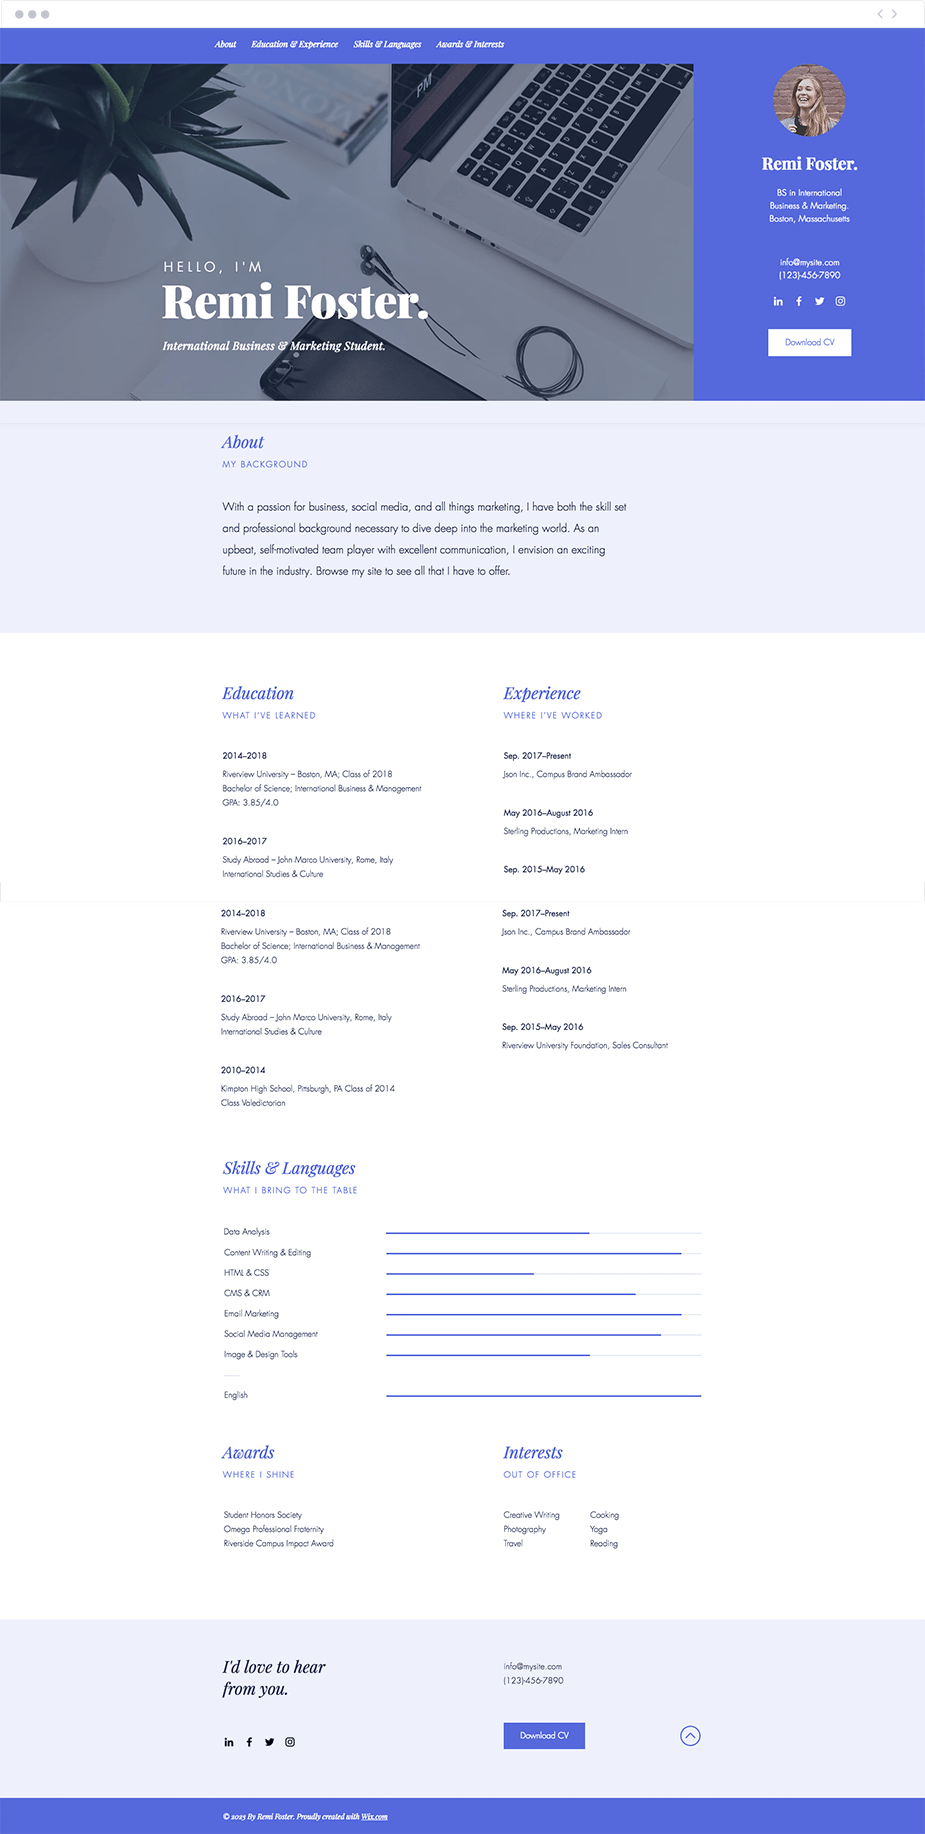 Resume Website Interesting 48 Polished Resume Website Templates For All Professionals